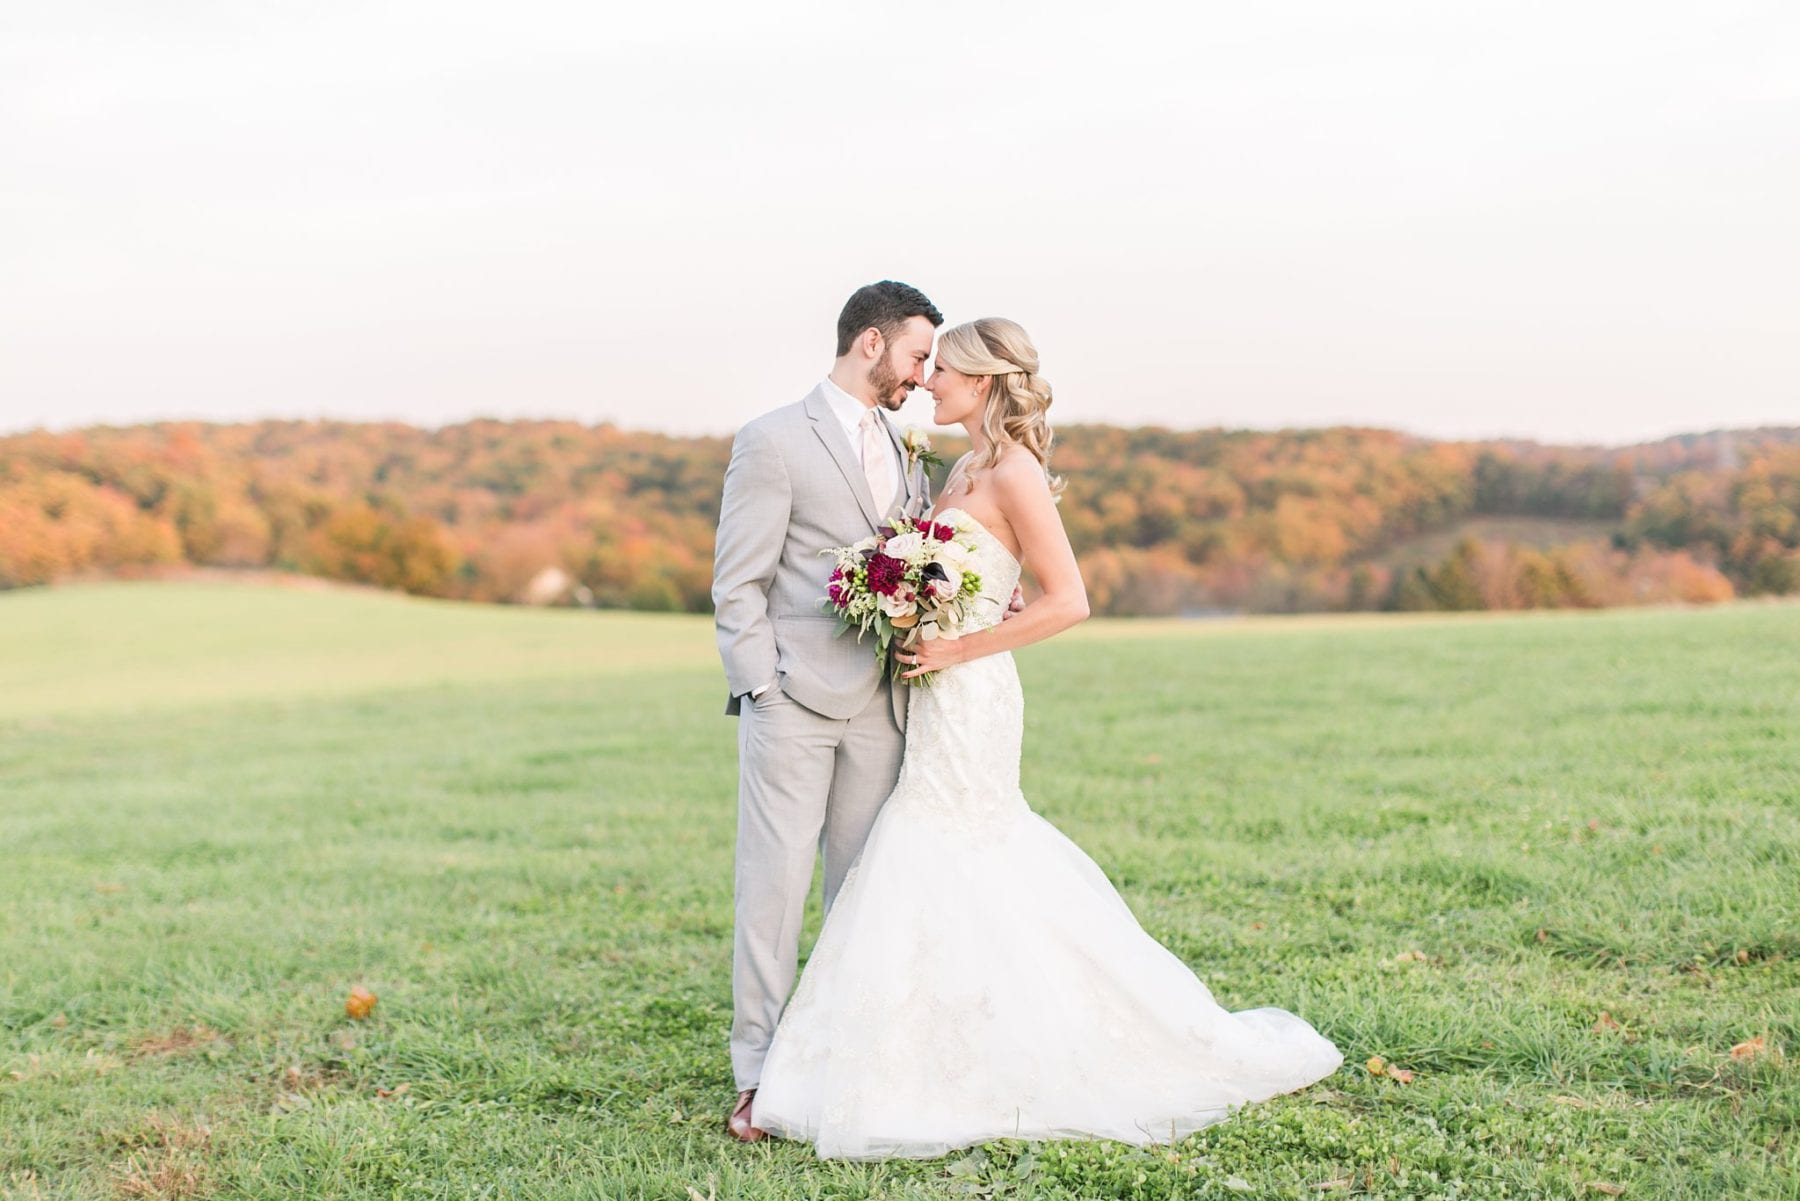 Wyndridge Farm Wedding Photos Dallastown Pennsylvania Wedding Photographer Megan Kelsey Photography Heather & Matt-683.jpg